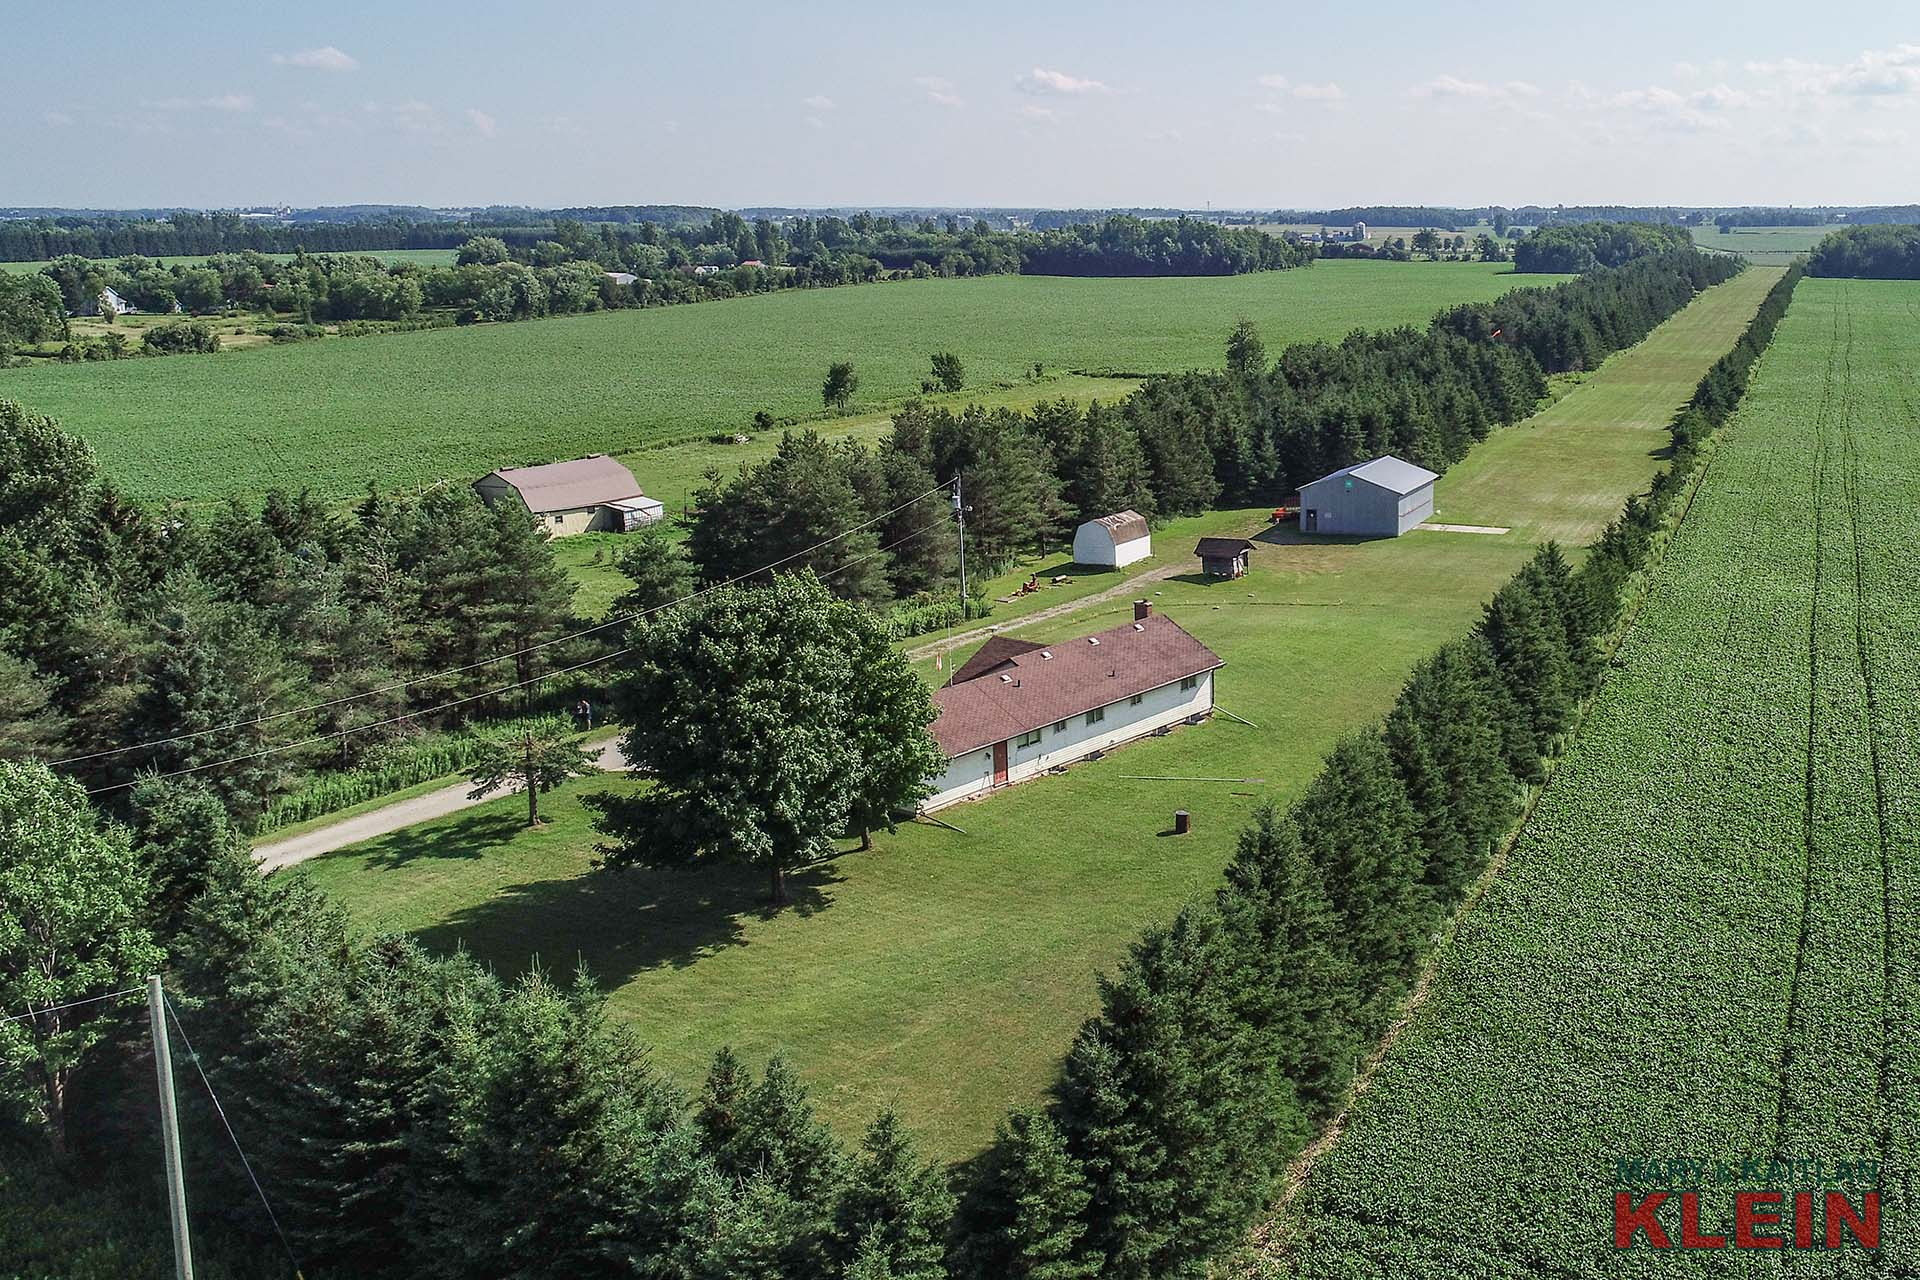 13 Acres, Arthur Ontario, Bungalow, Grass Landing Strip, Airplane Hangar